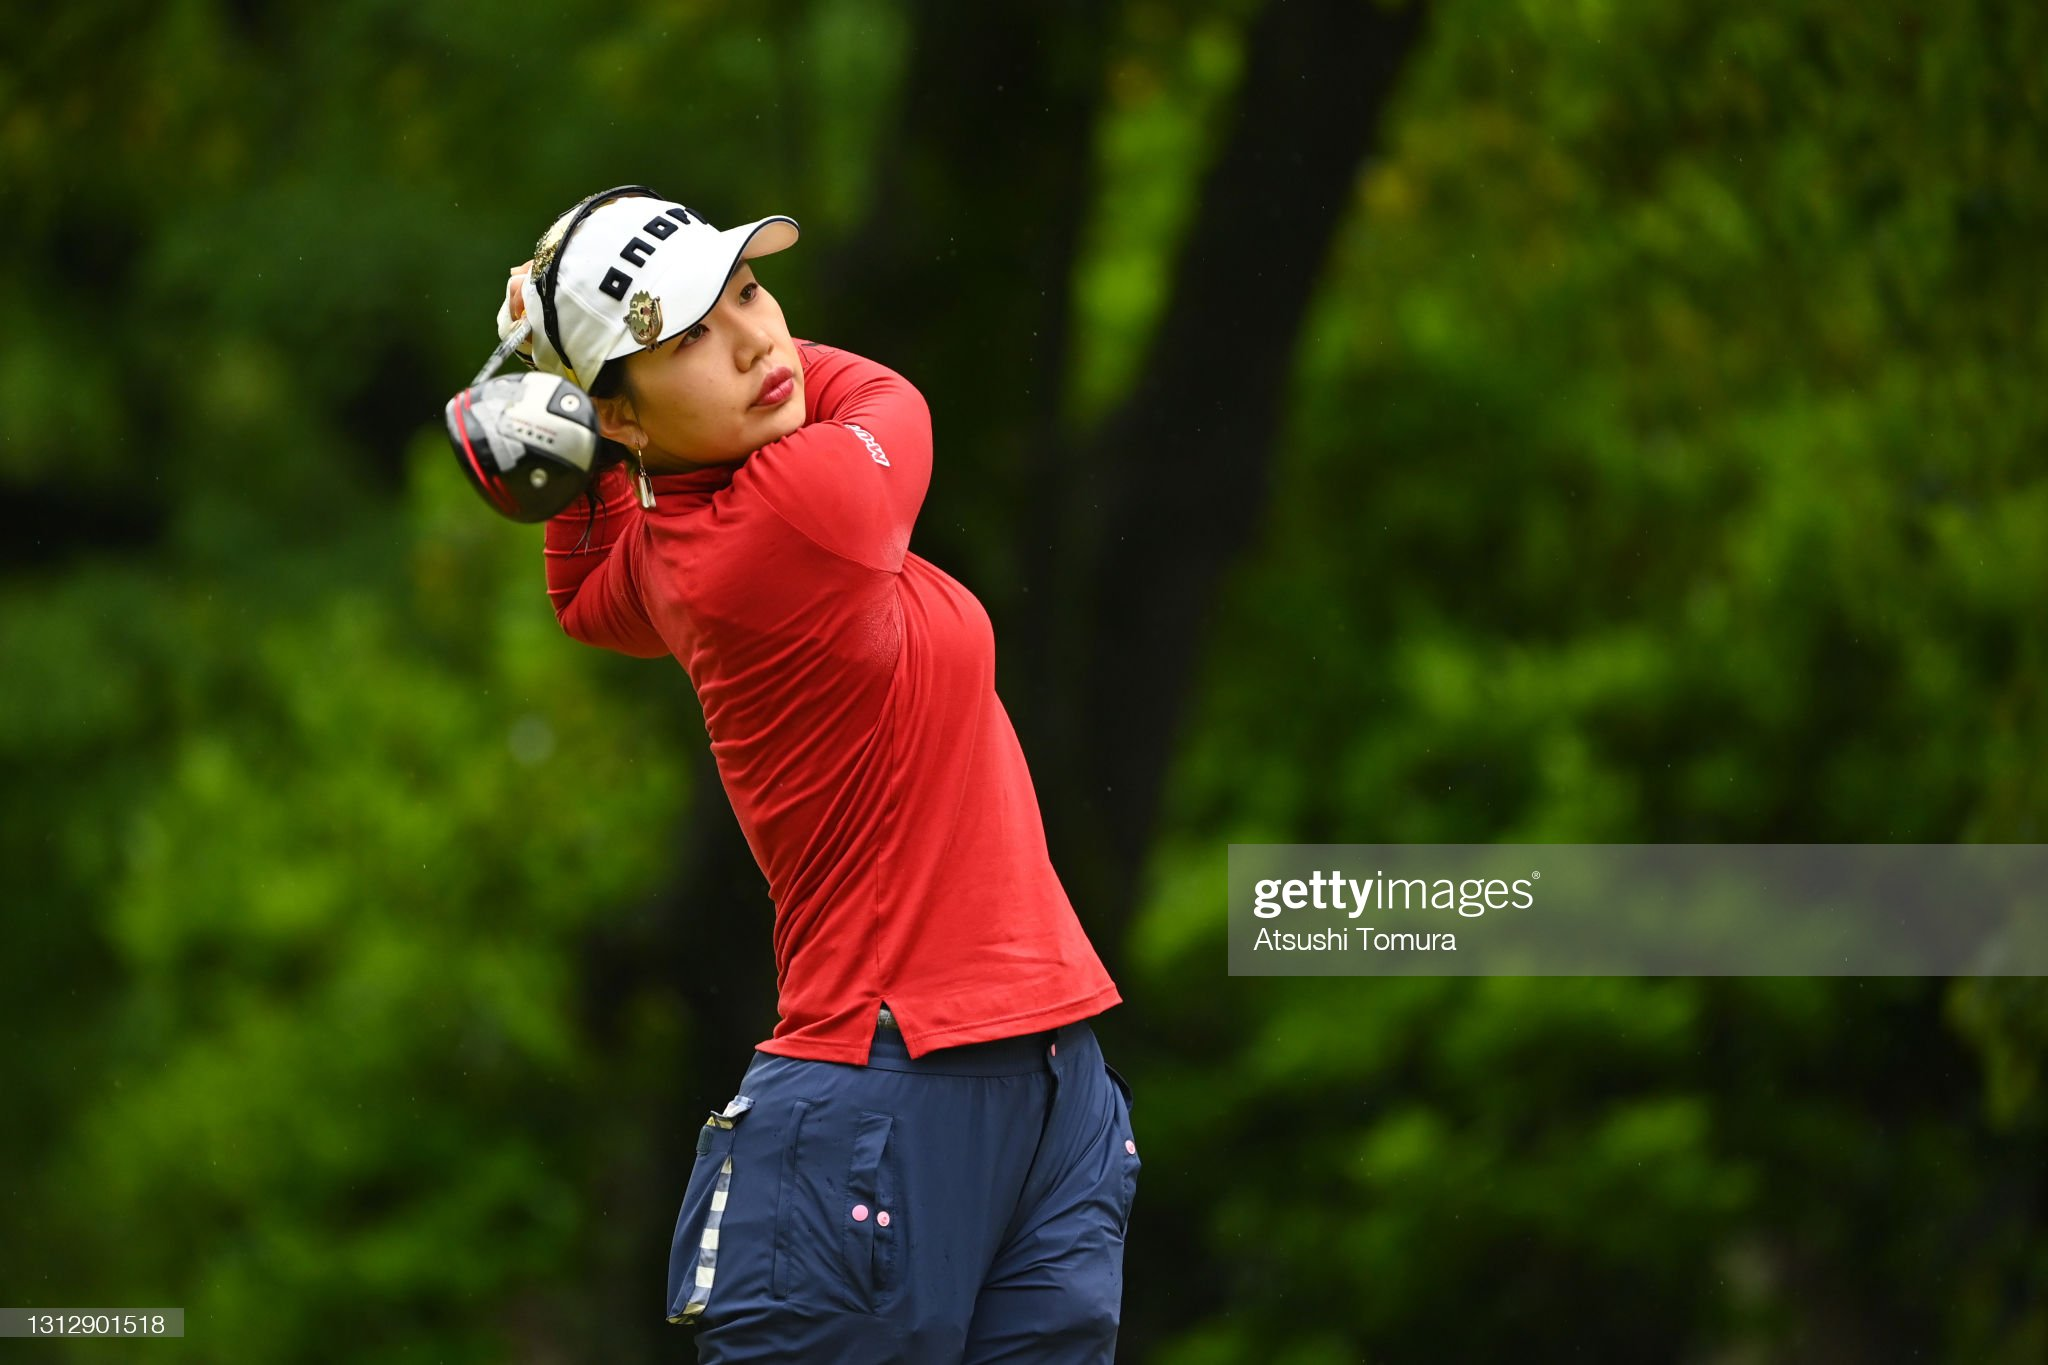 https://media.gettyimages.com/photos/ahreum-hwang-of-south-korea-hits-her-tee-shot-on-the-7th-hole-during-picture-id1312901518?s=2048x2048